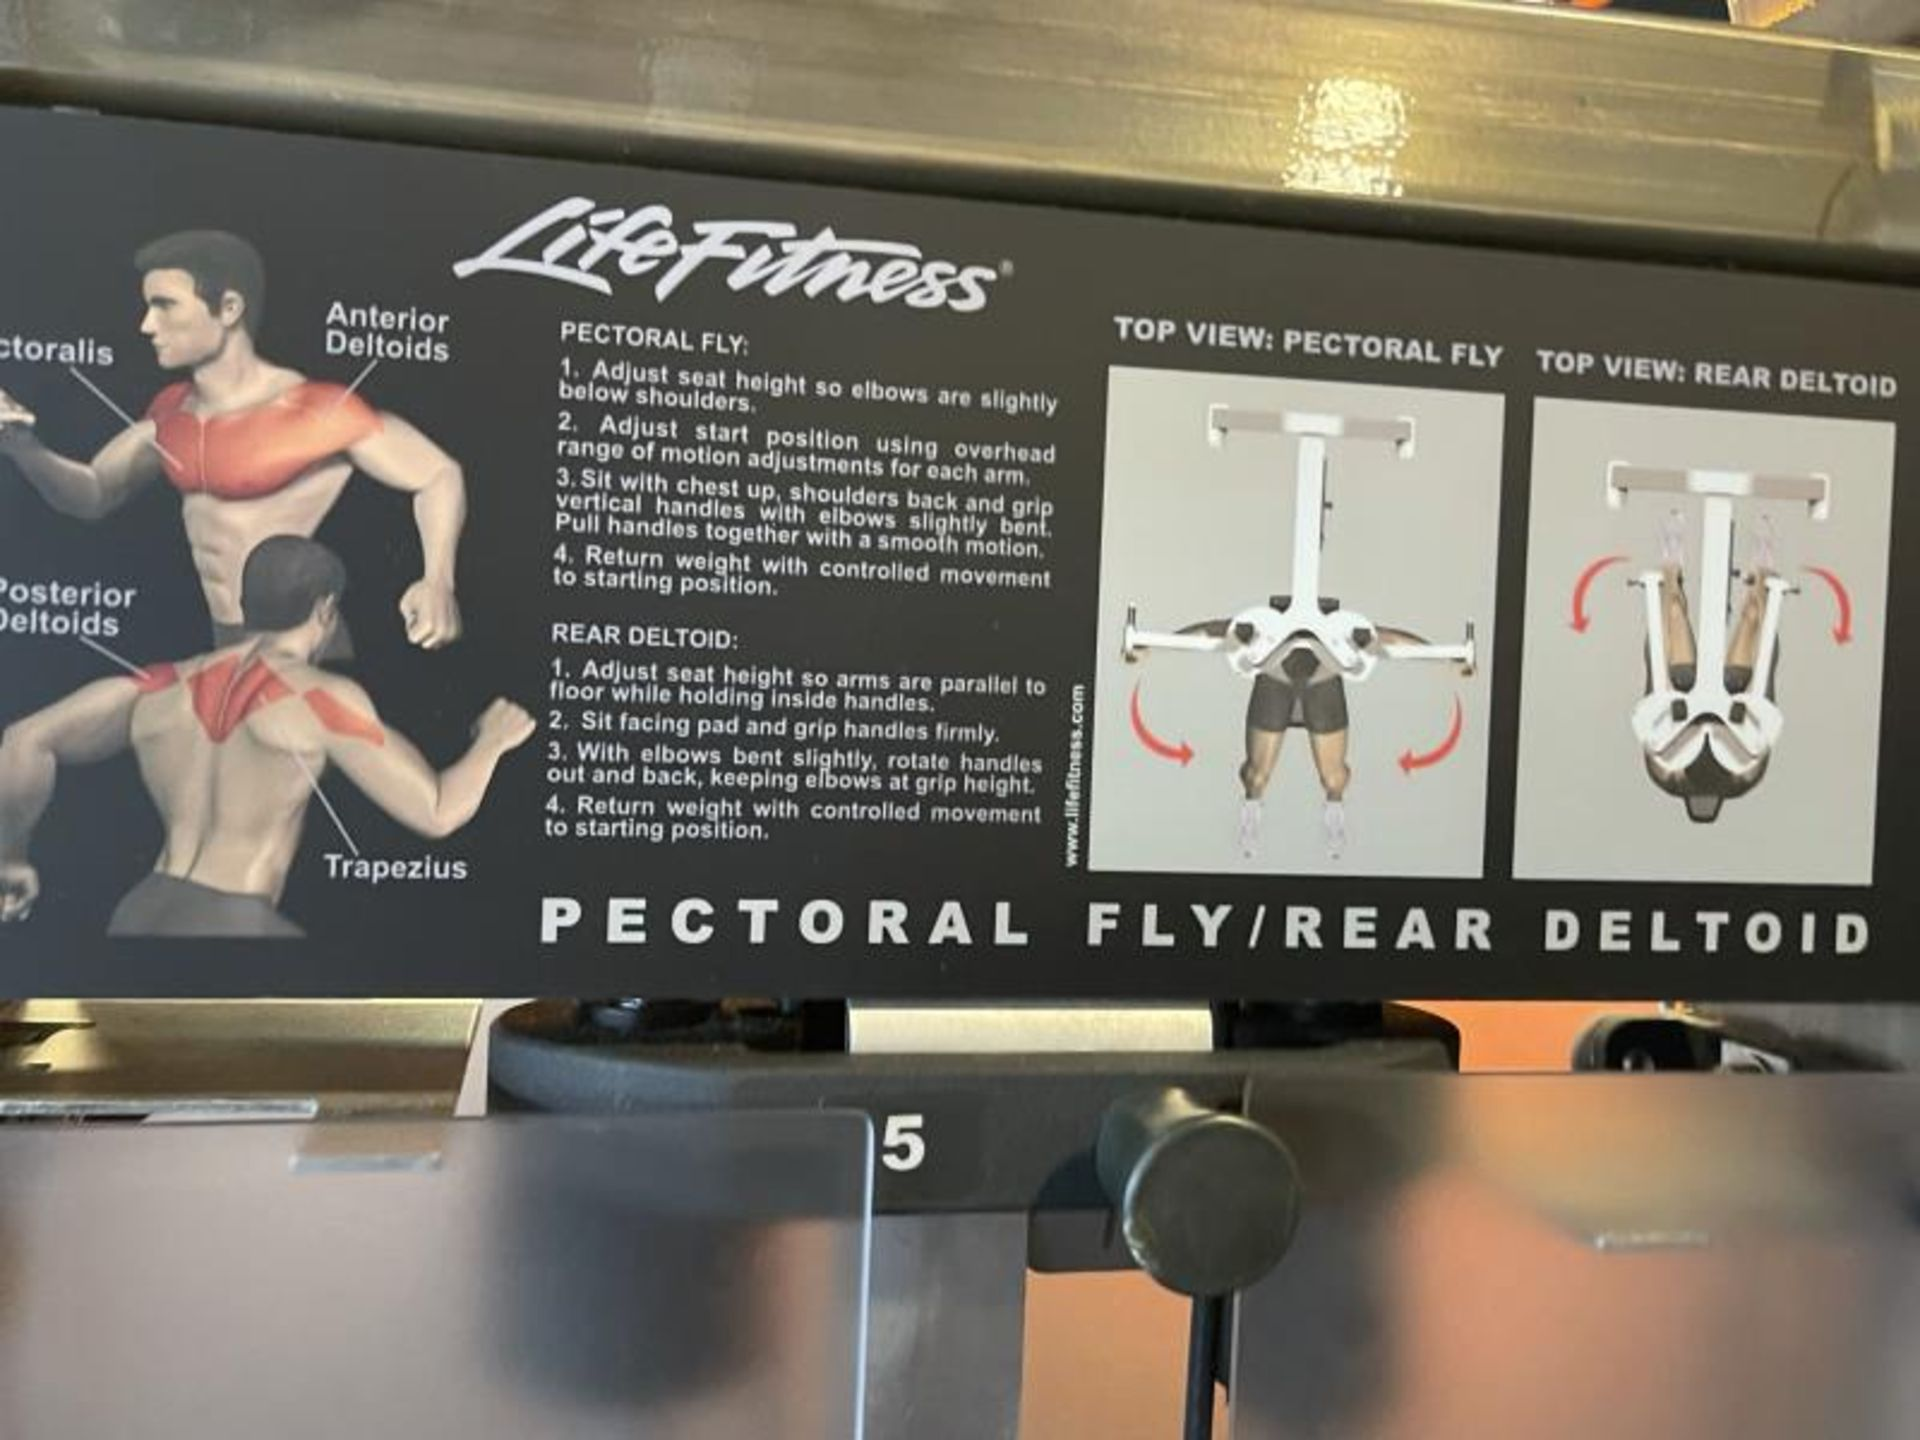 Life Fitness Pectoral Fly/Rear Deltoid M: PSFLYSE - Image 3 of 6